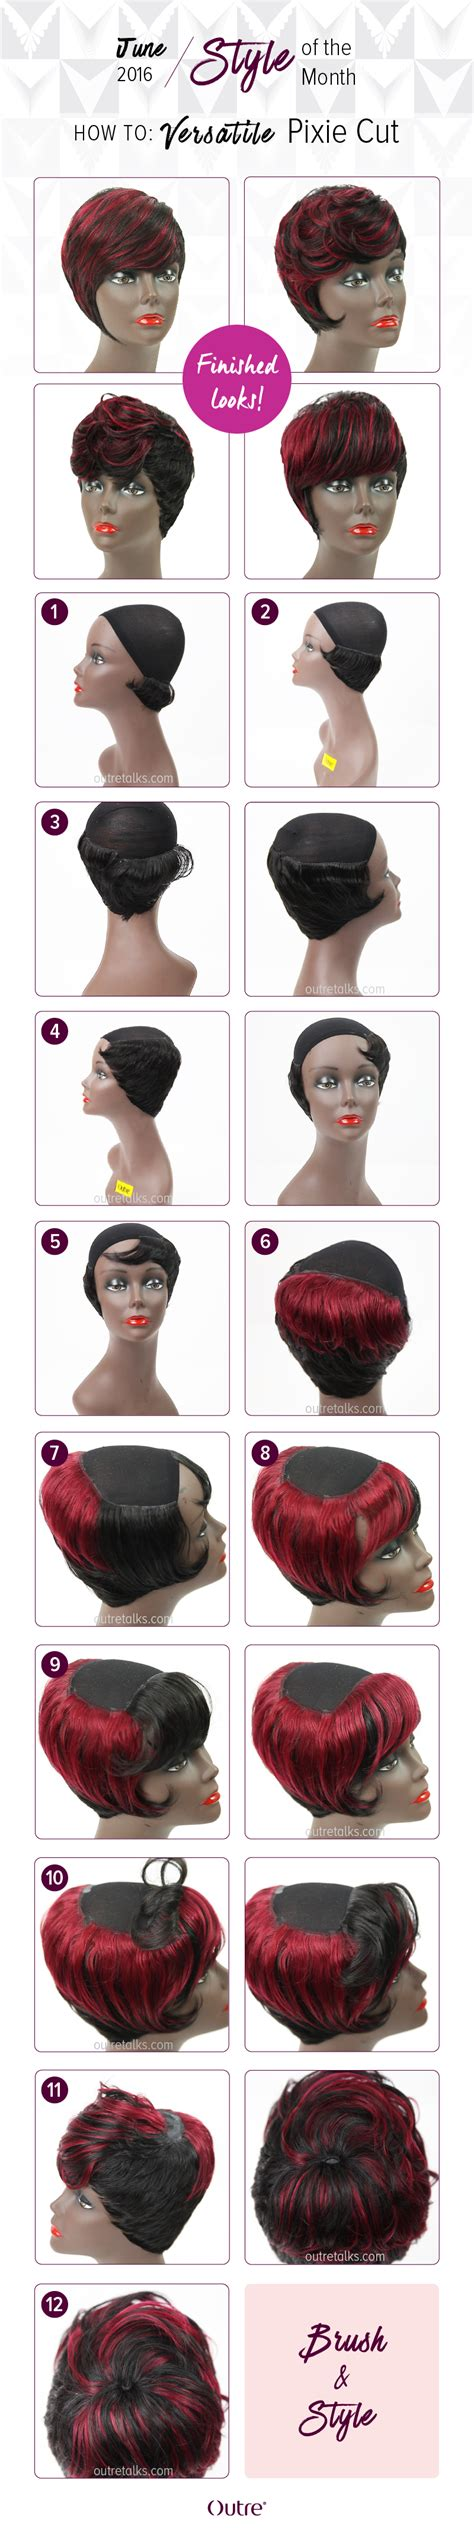 pixie cut tutorial step by step step by step pixie cut hairstylegalleries com